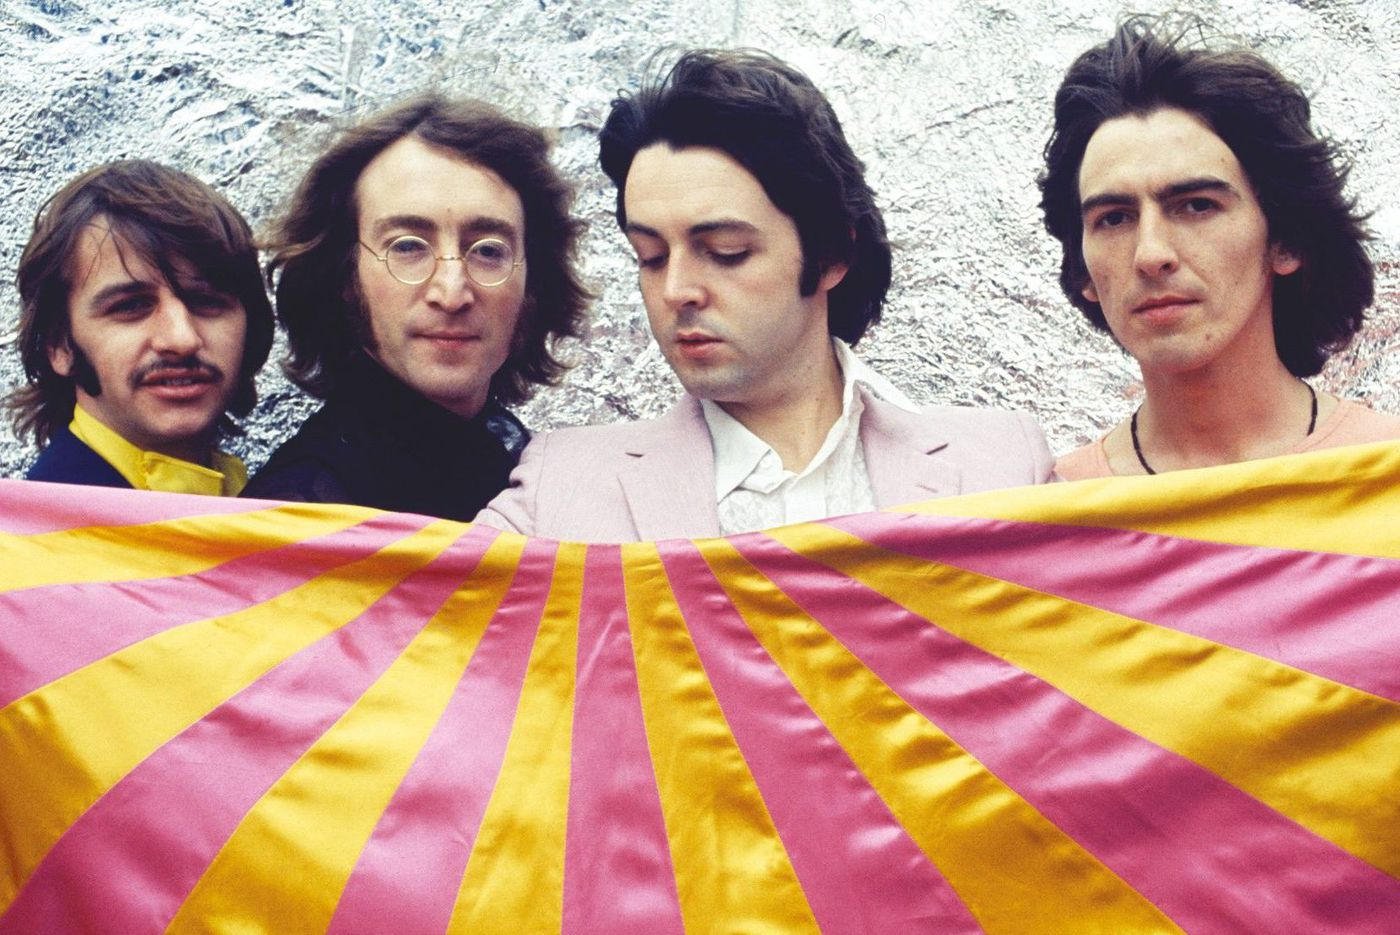 Image result for the beatles white album era images